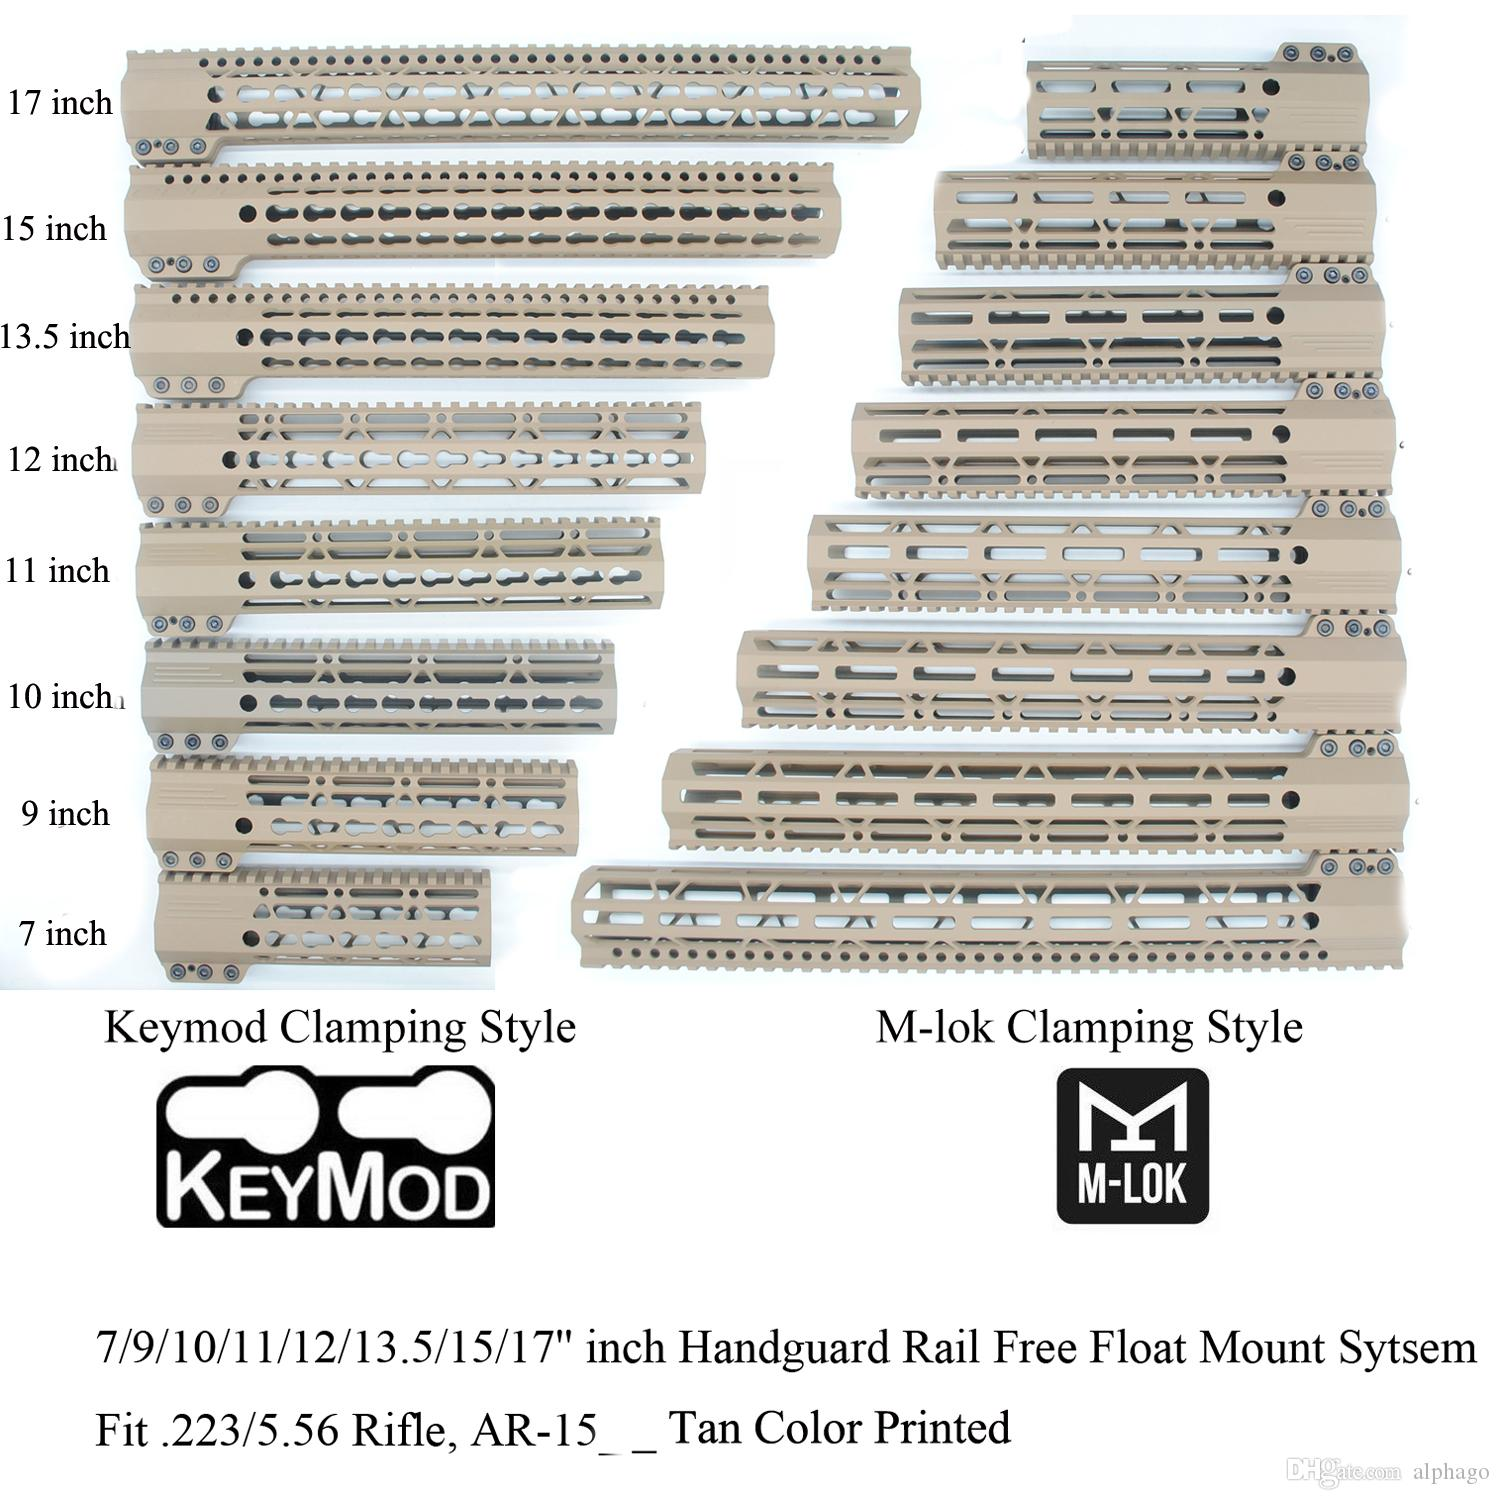 7/9/10/11/12/13.5/15/17'' inch Keymod/M-lok Clamping Style Handguard Rail Free Float Picatinny Mount System_Tan Color Printed